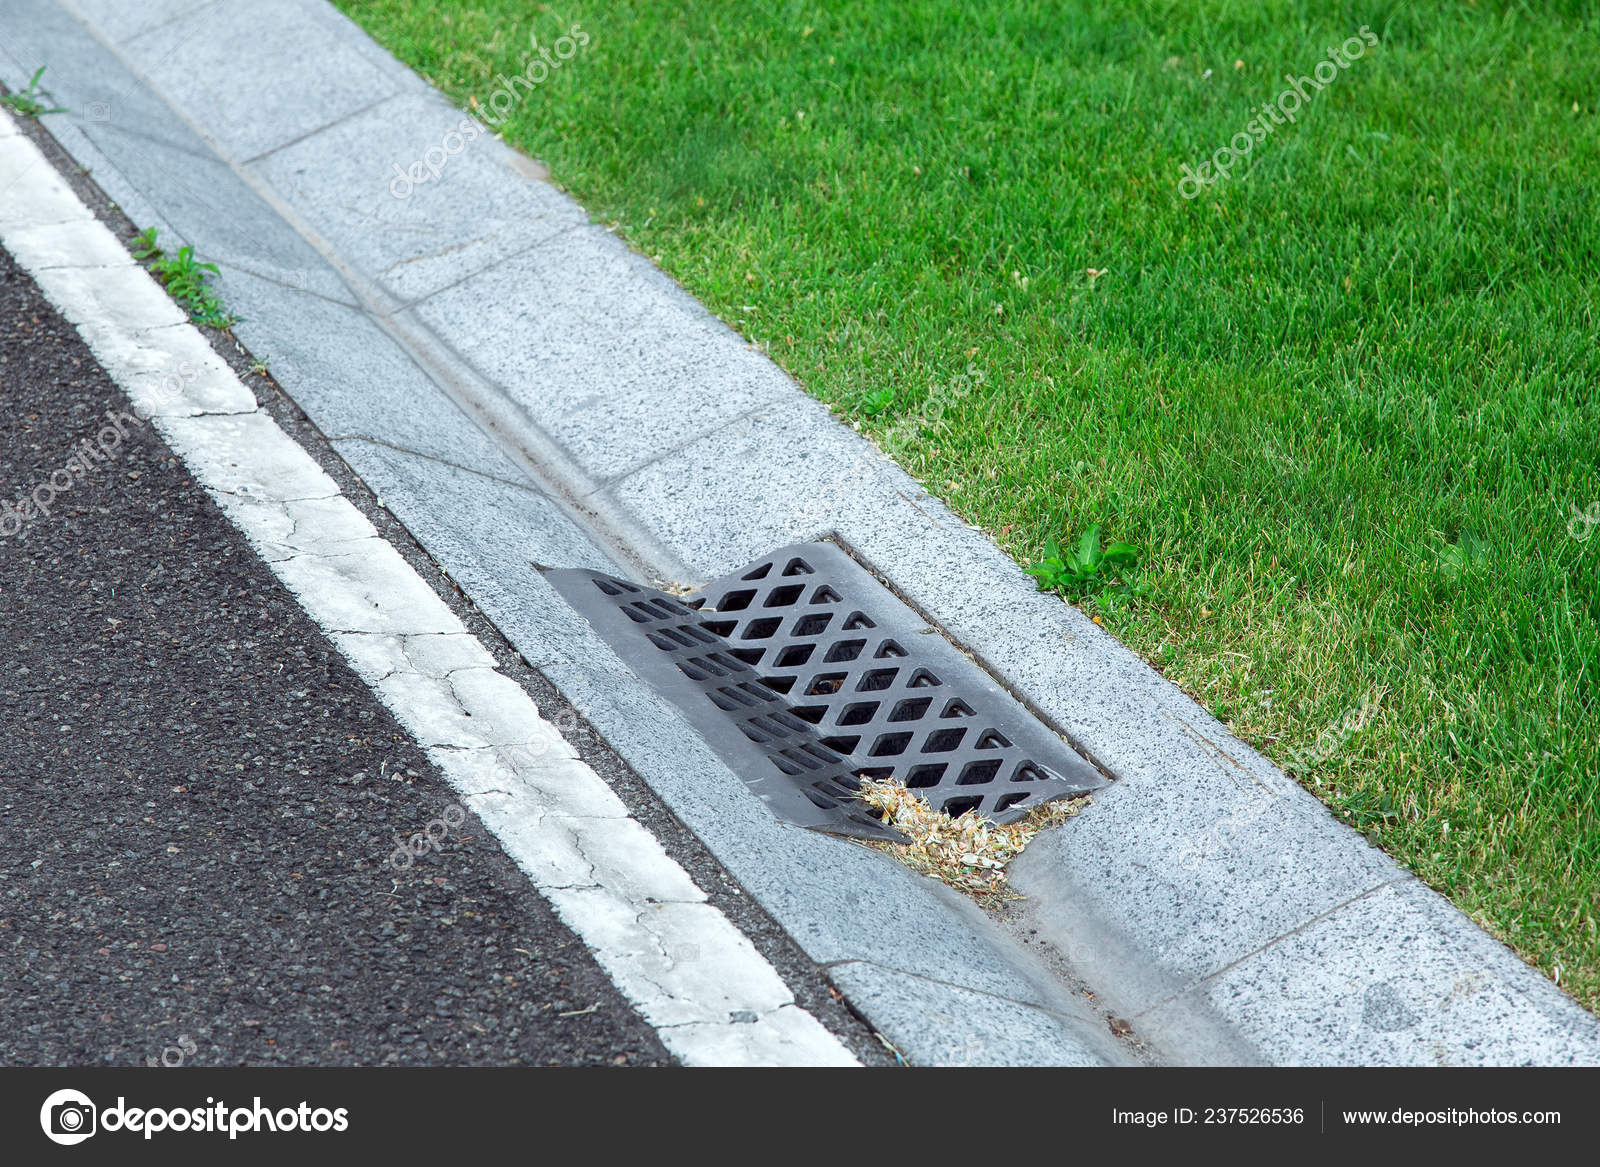 Pictures: stormwater | Street Gutter Stormwater Drainage